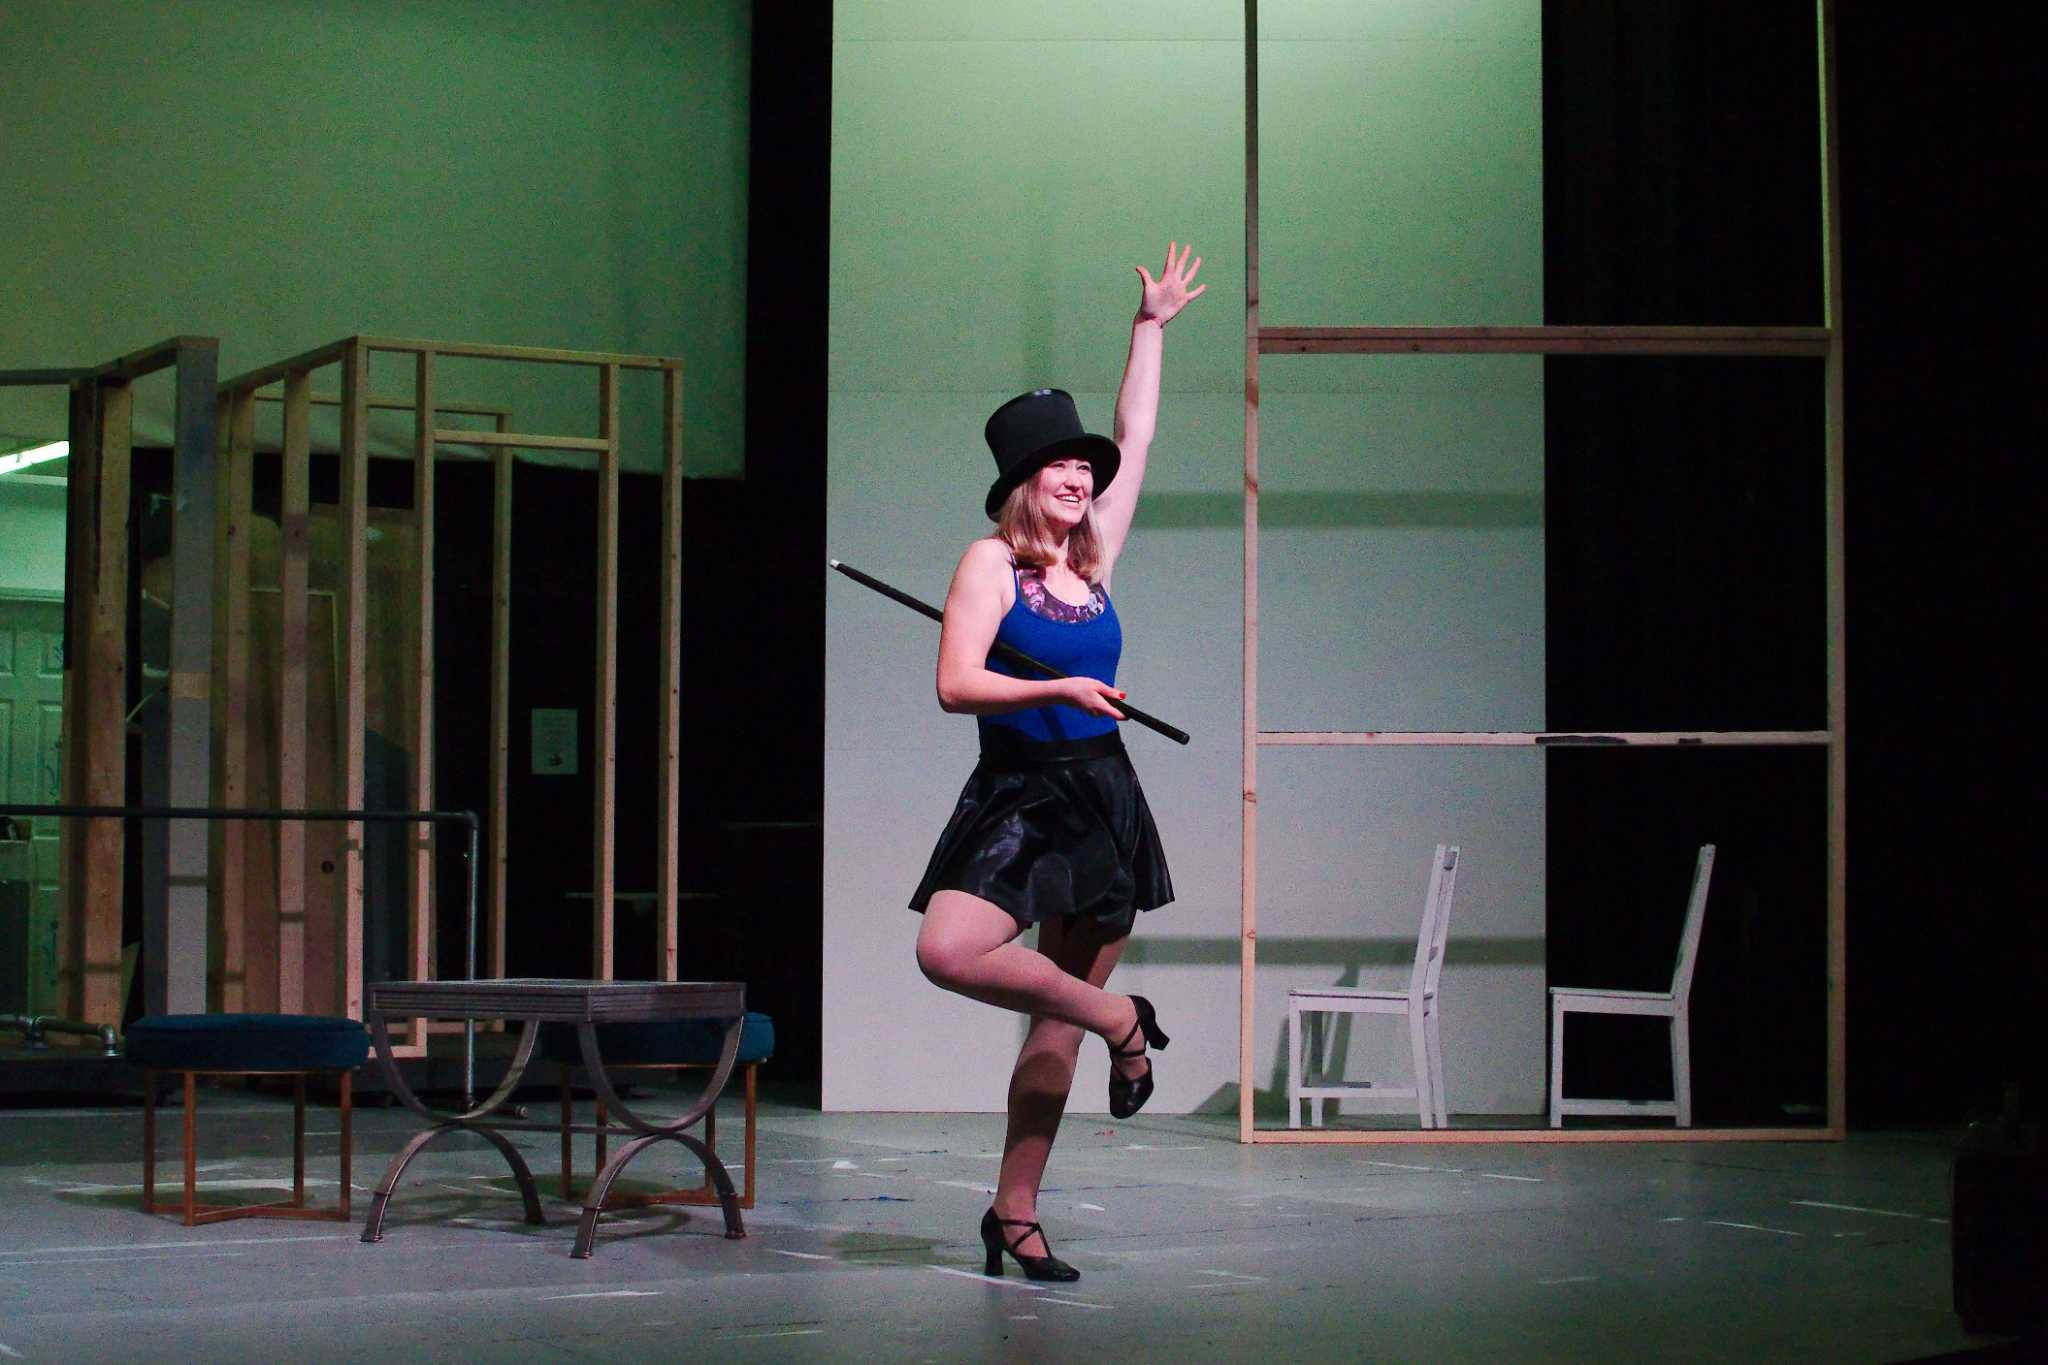 'Sweet Charity' showcases classic Broadway tunes, Fosse dance moves